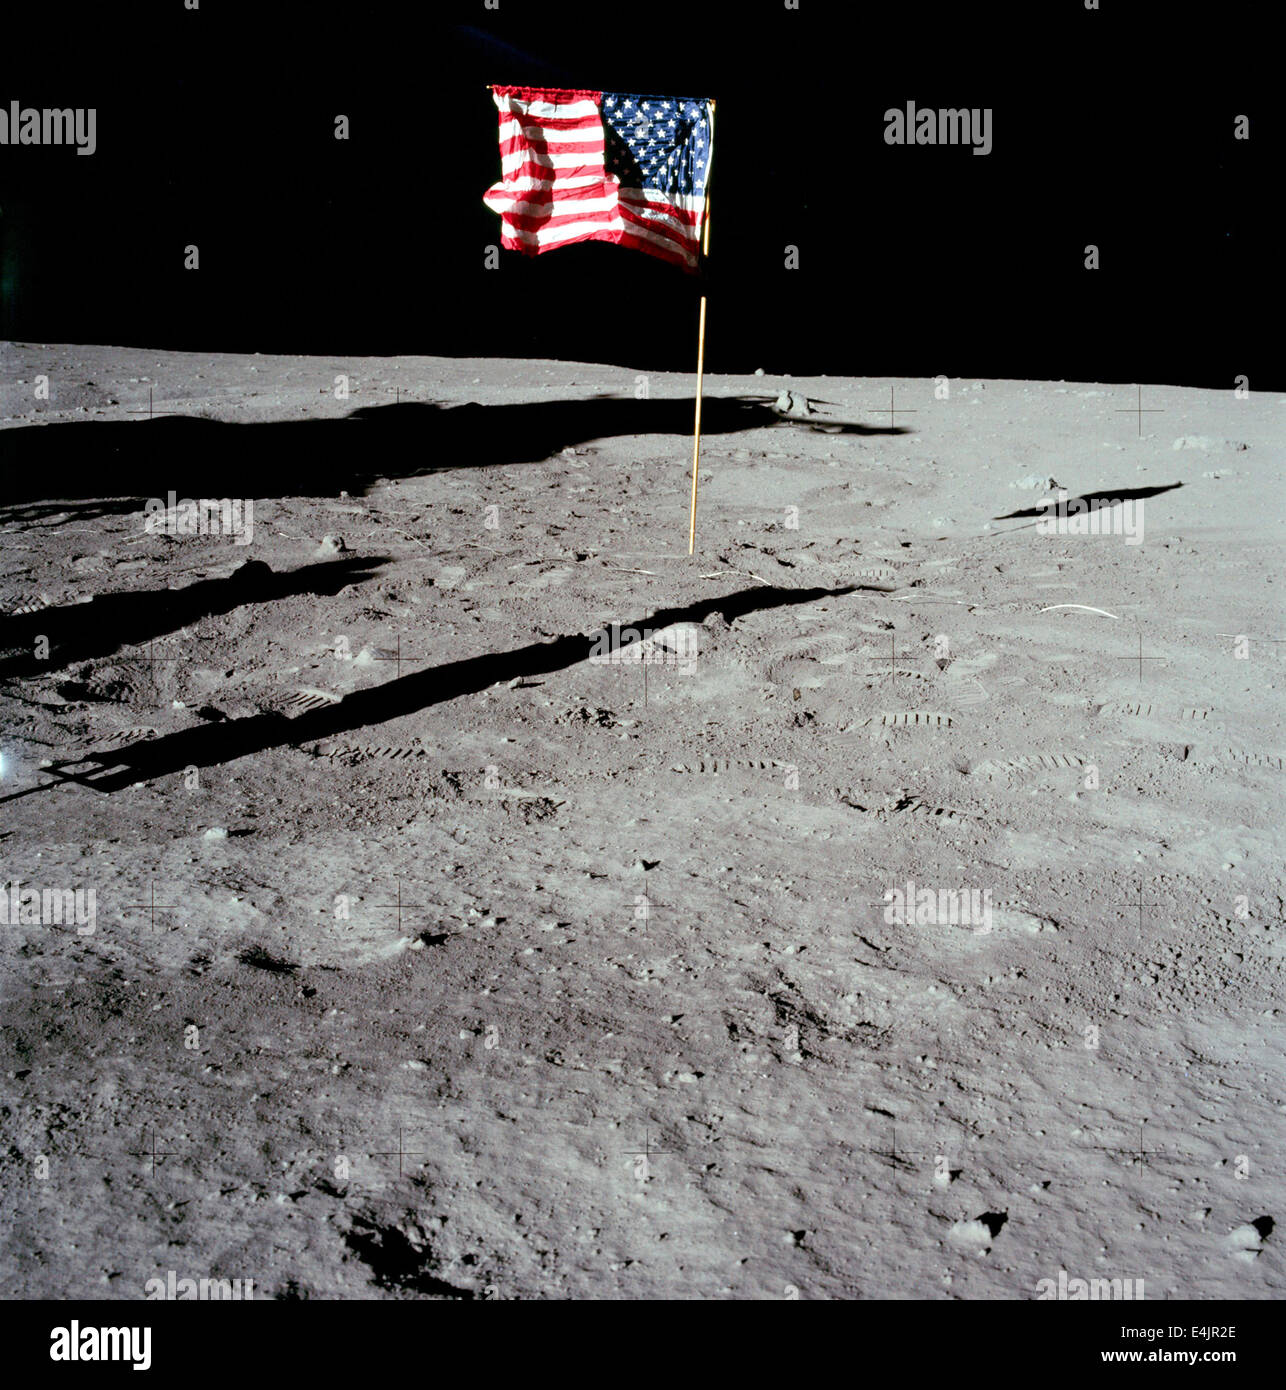 Apollo 11 American flag on the Moon surface - Stock Image